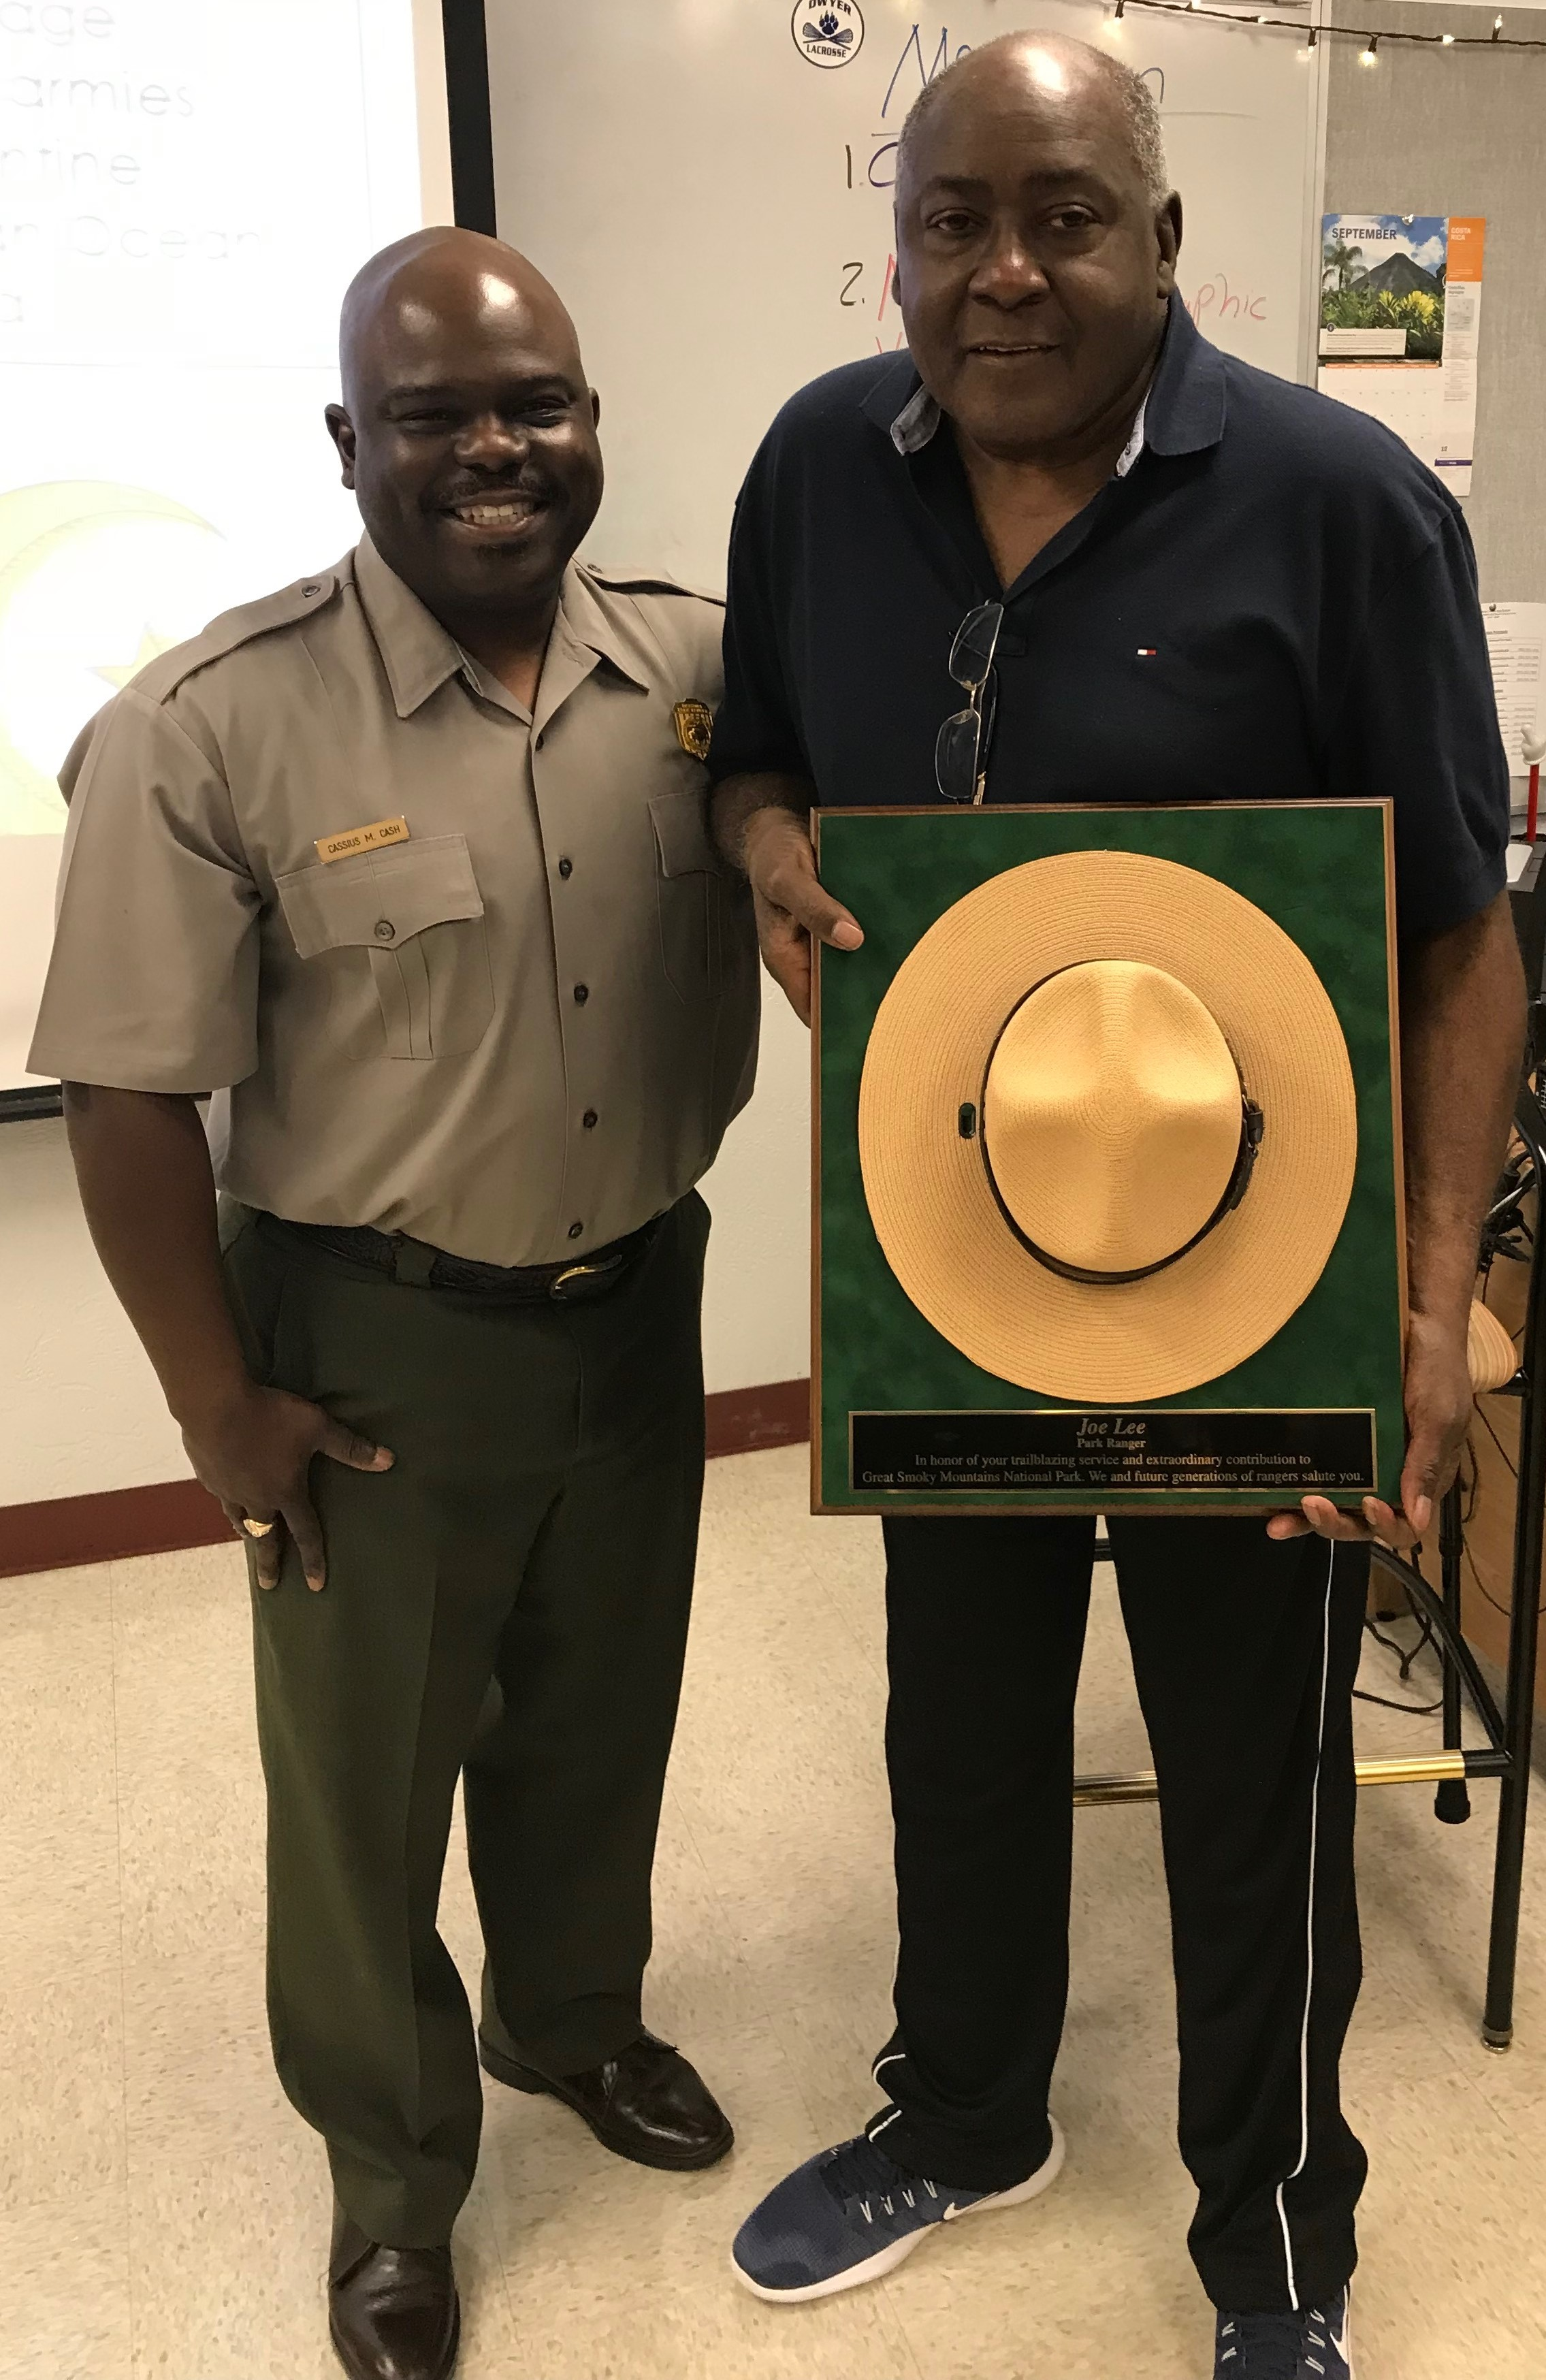 Park Superintendent Recognizes First African American Naturalist